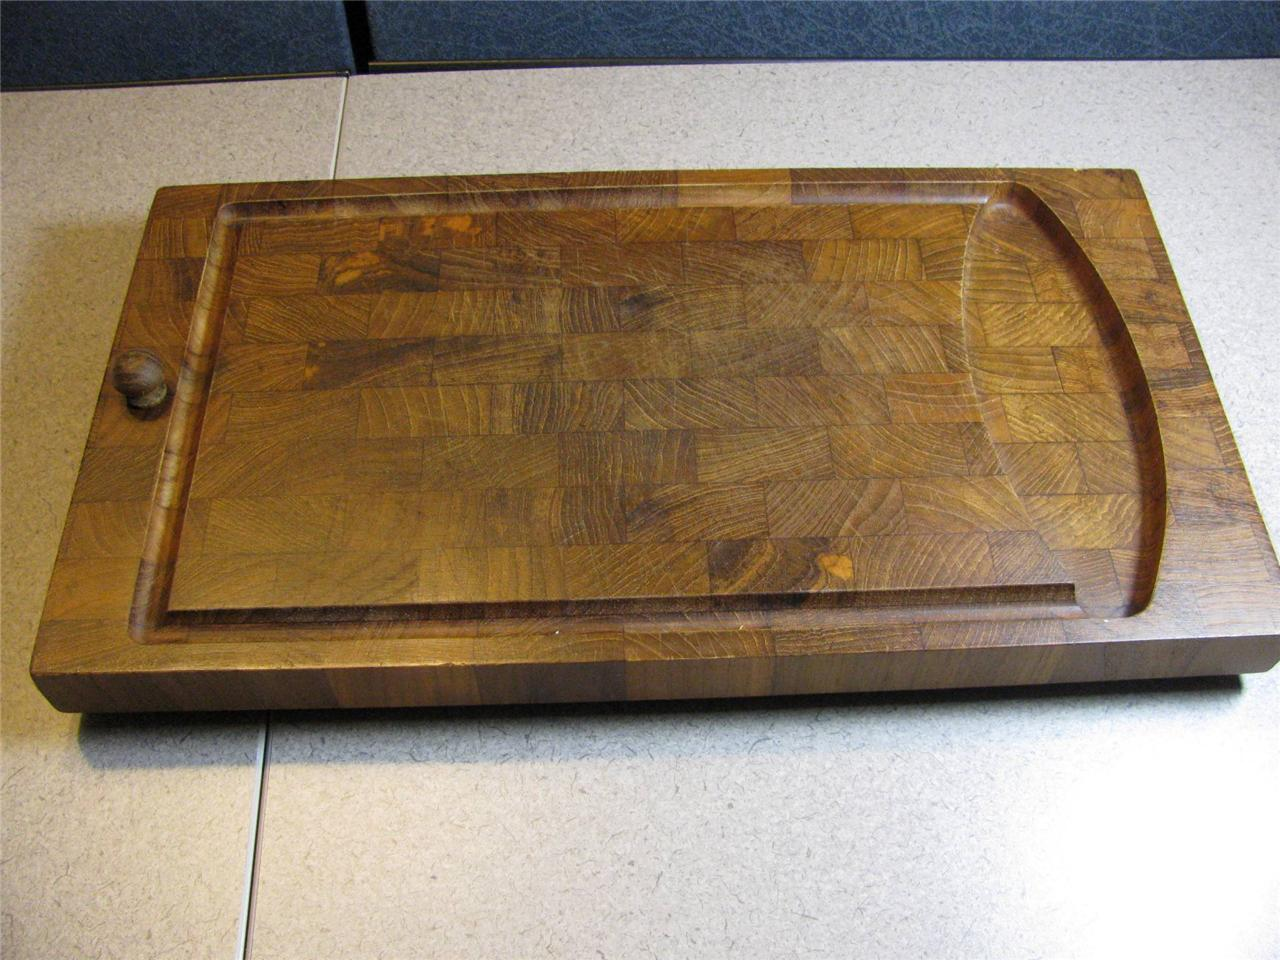 Digsmed Denmark Staved Teak Carving Cutting Board Mid